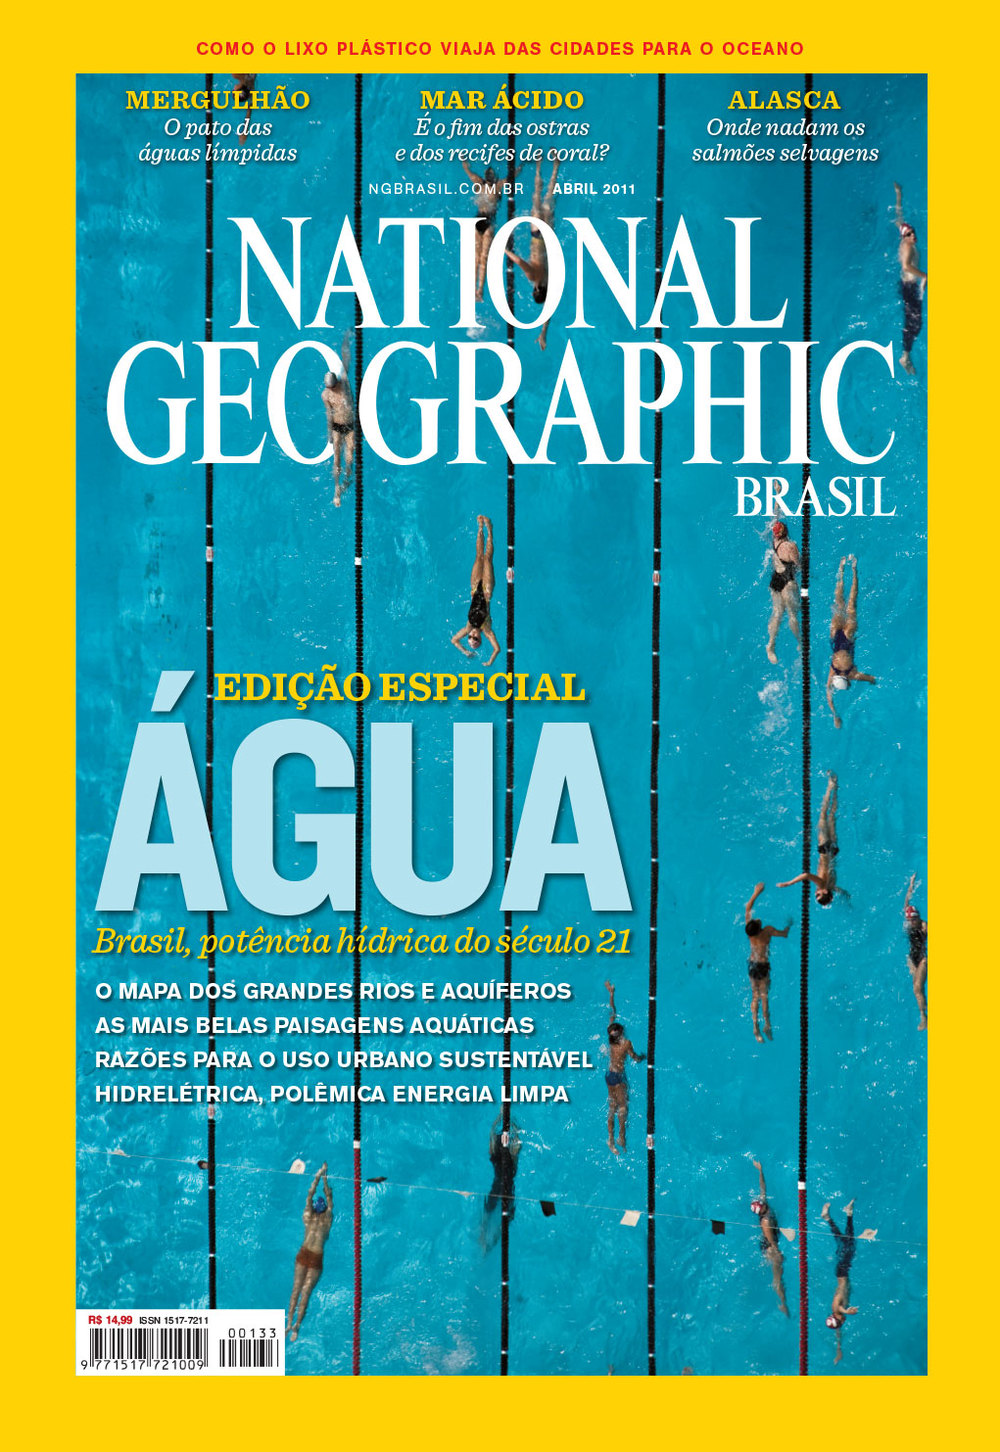 Photo editing and cover design | NG Brazil, April 2011. Photo: Cassio Vasconcellos